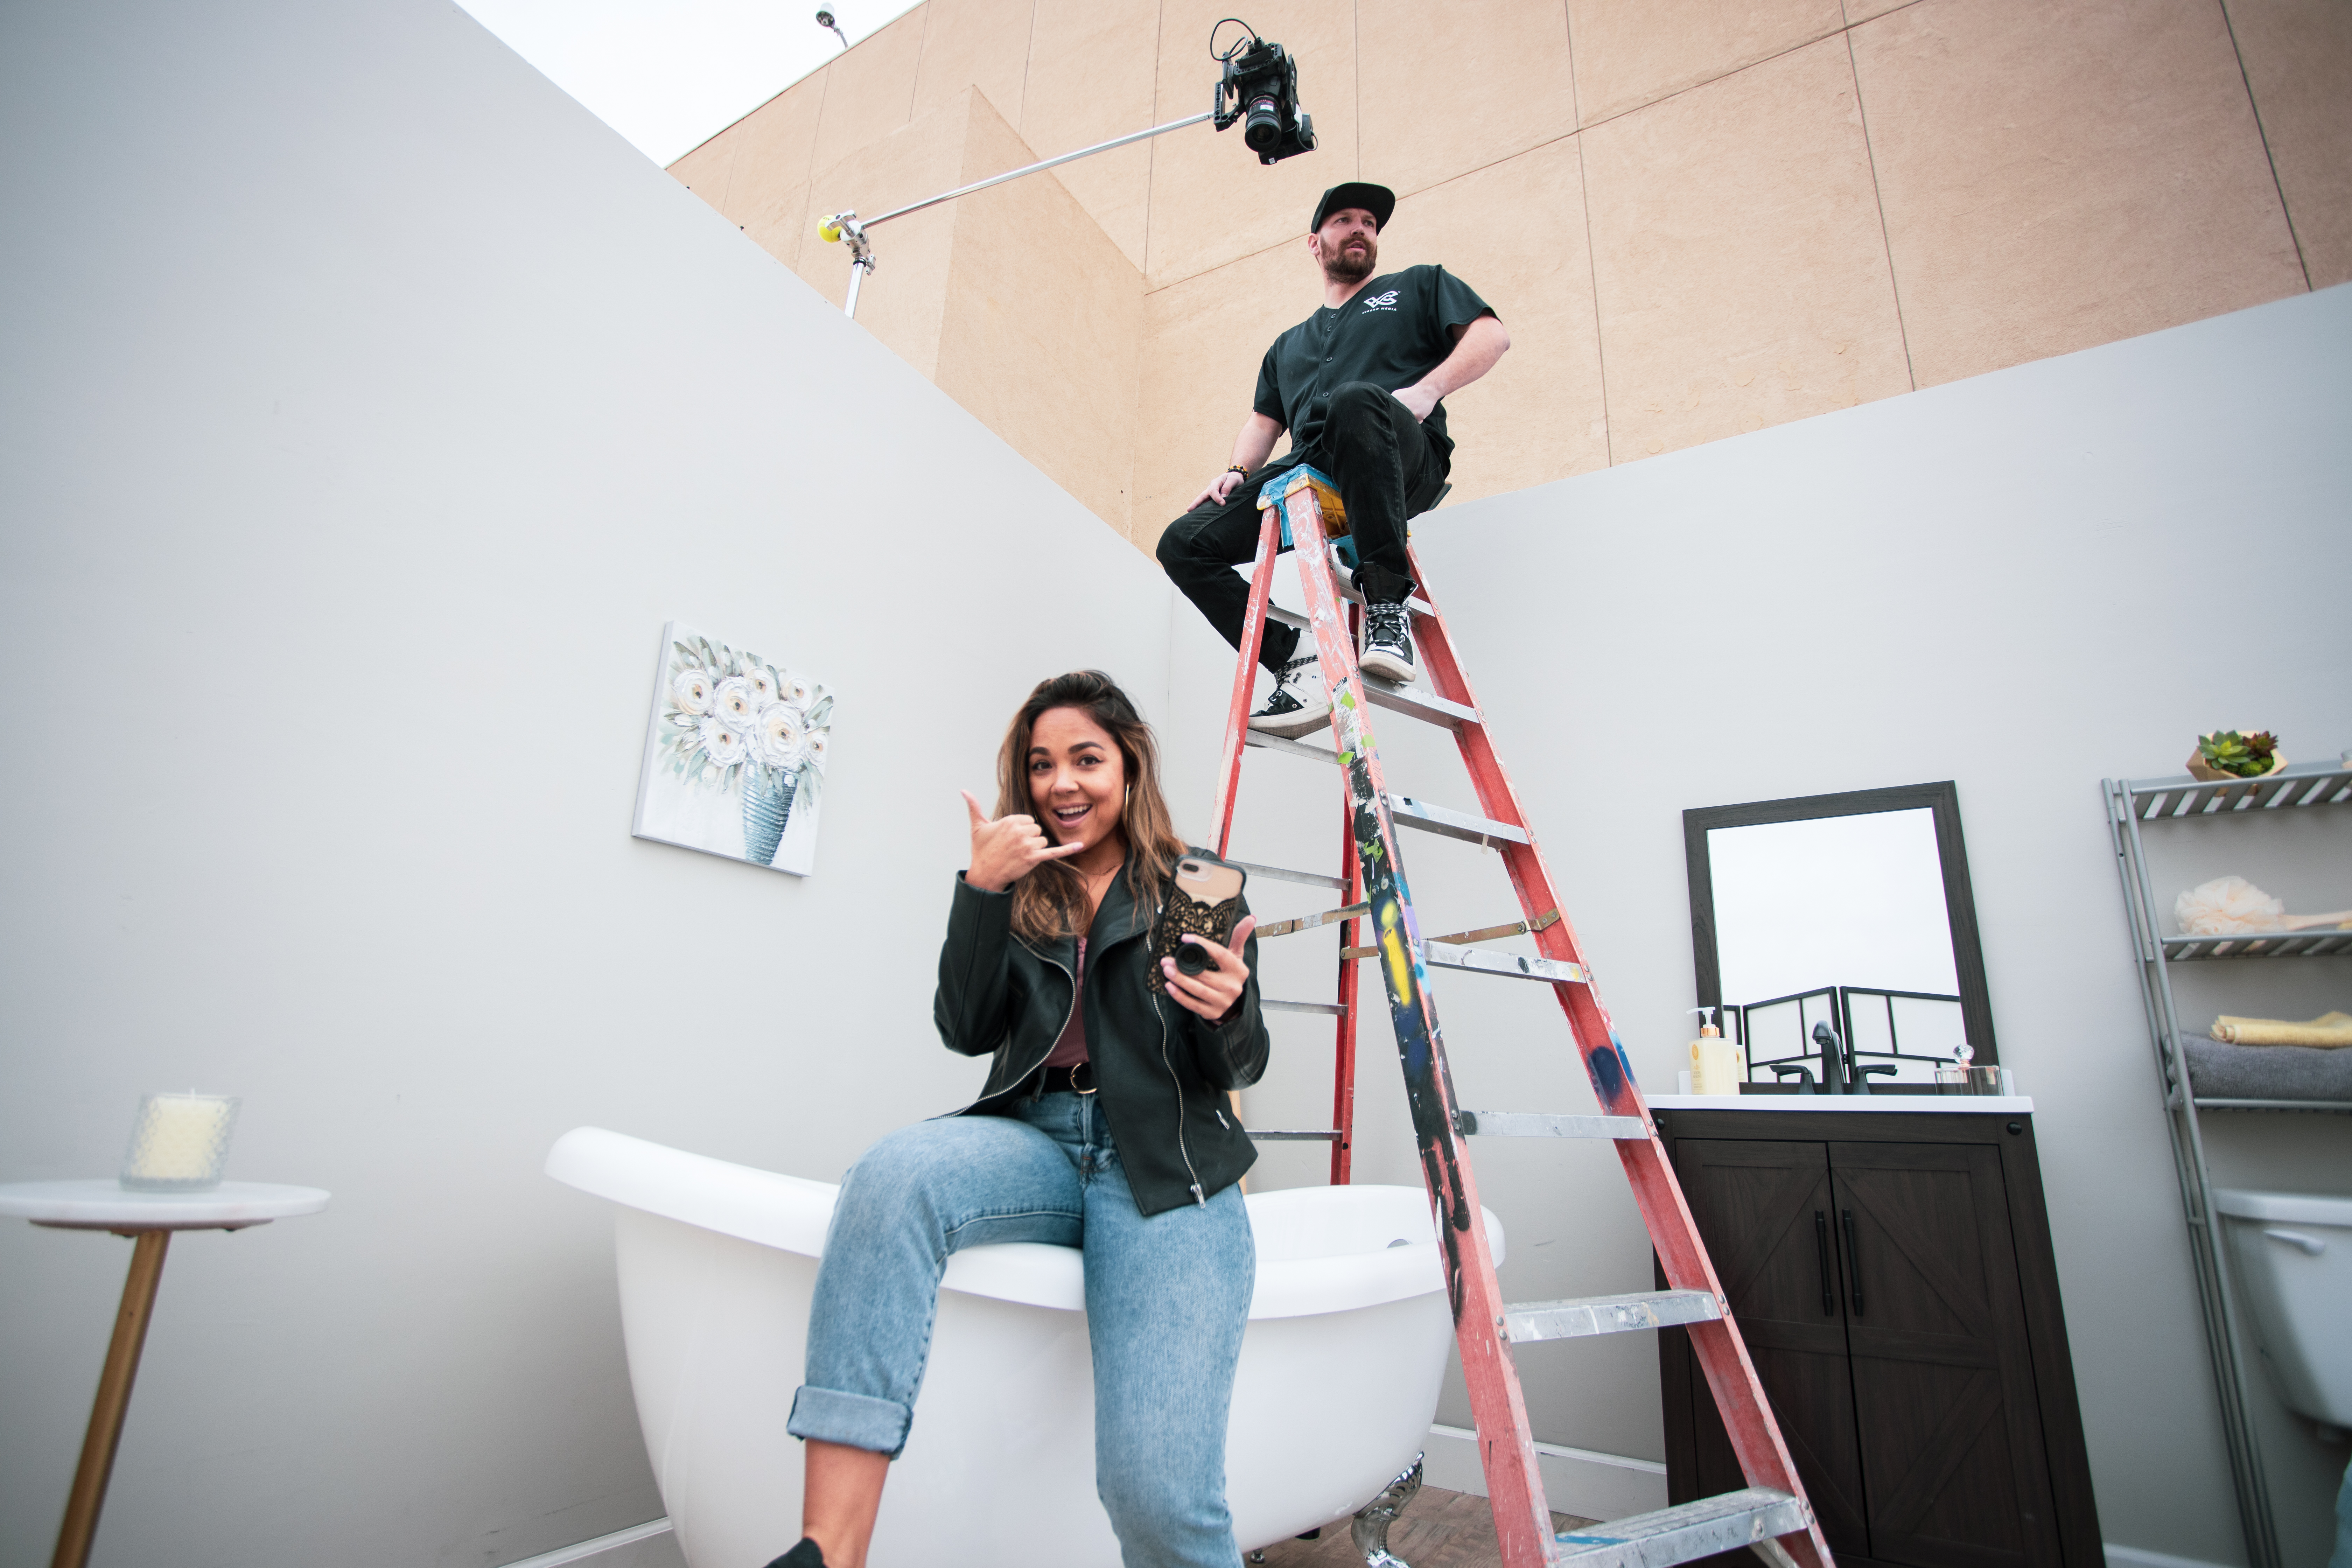 Man and woman smiling at the camera next to a bathtub and ladder.